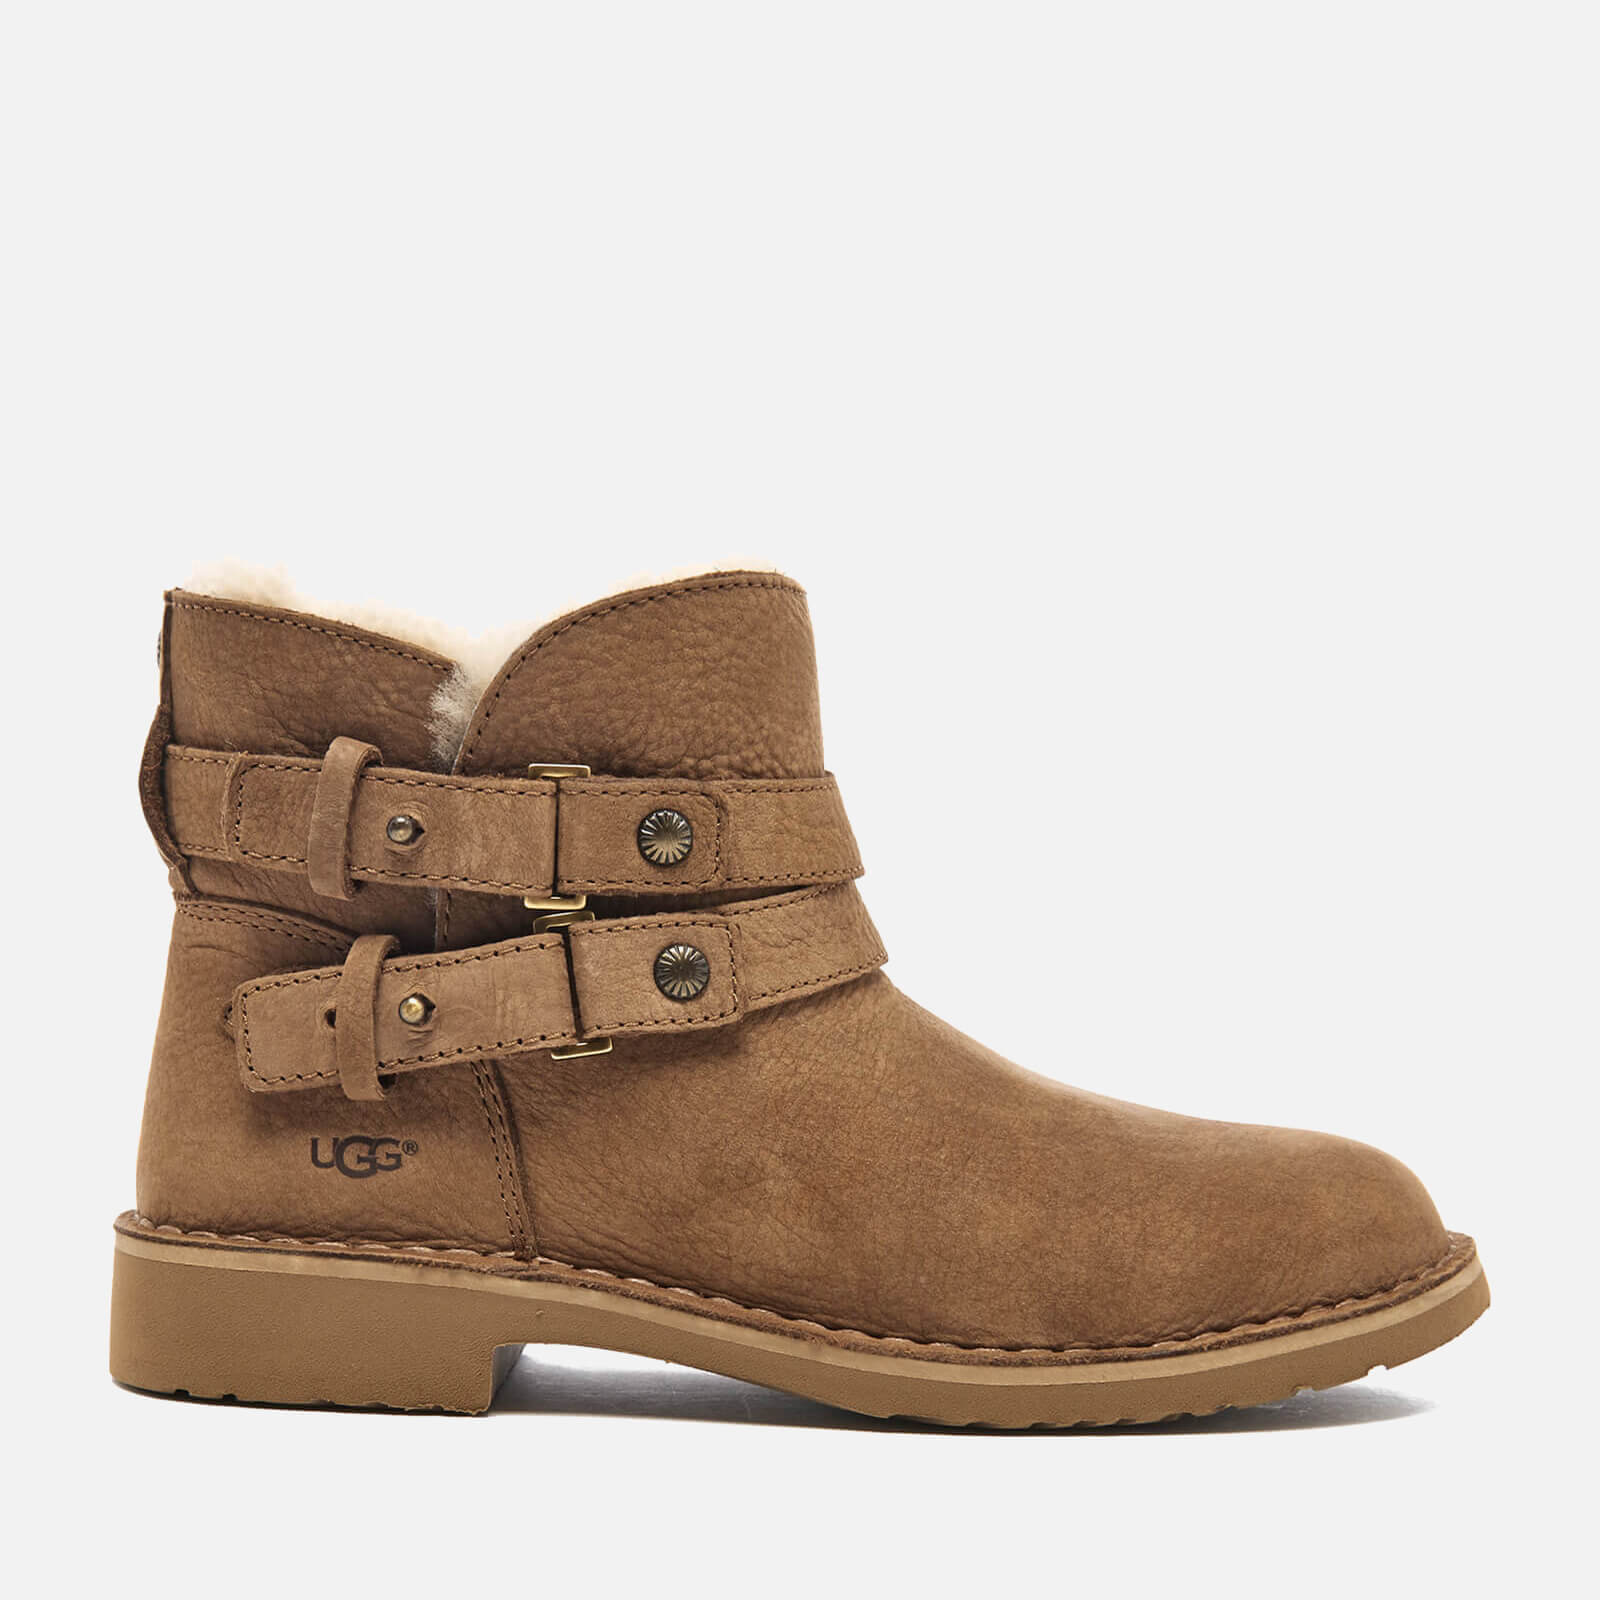 ed0afd21030 UGG Women's Aliso Double Strap Nubuck Ankle Boots - Chestnut